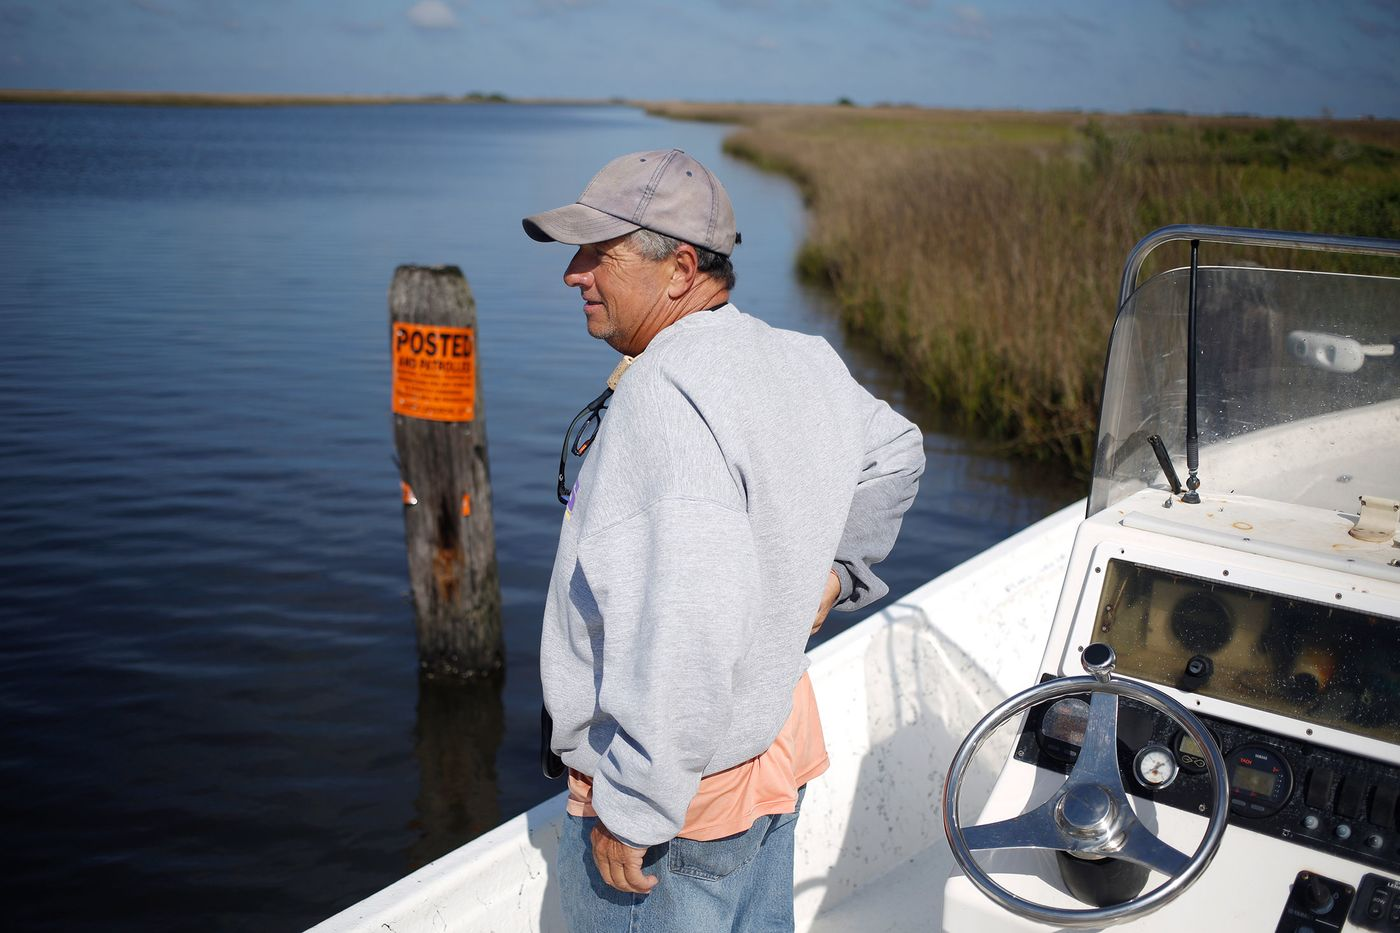 Daryl Carpenter aboard one of his fishing charter boats in the saltwater wetlands near Grand Isle, La., with a barrier erected by a private landowner.